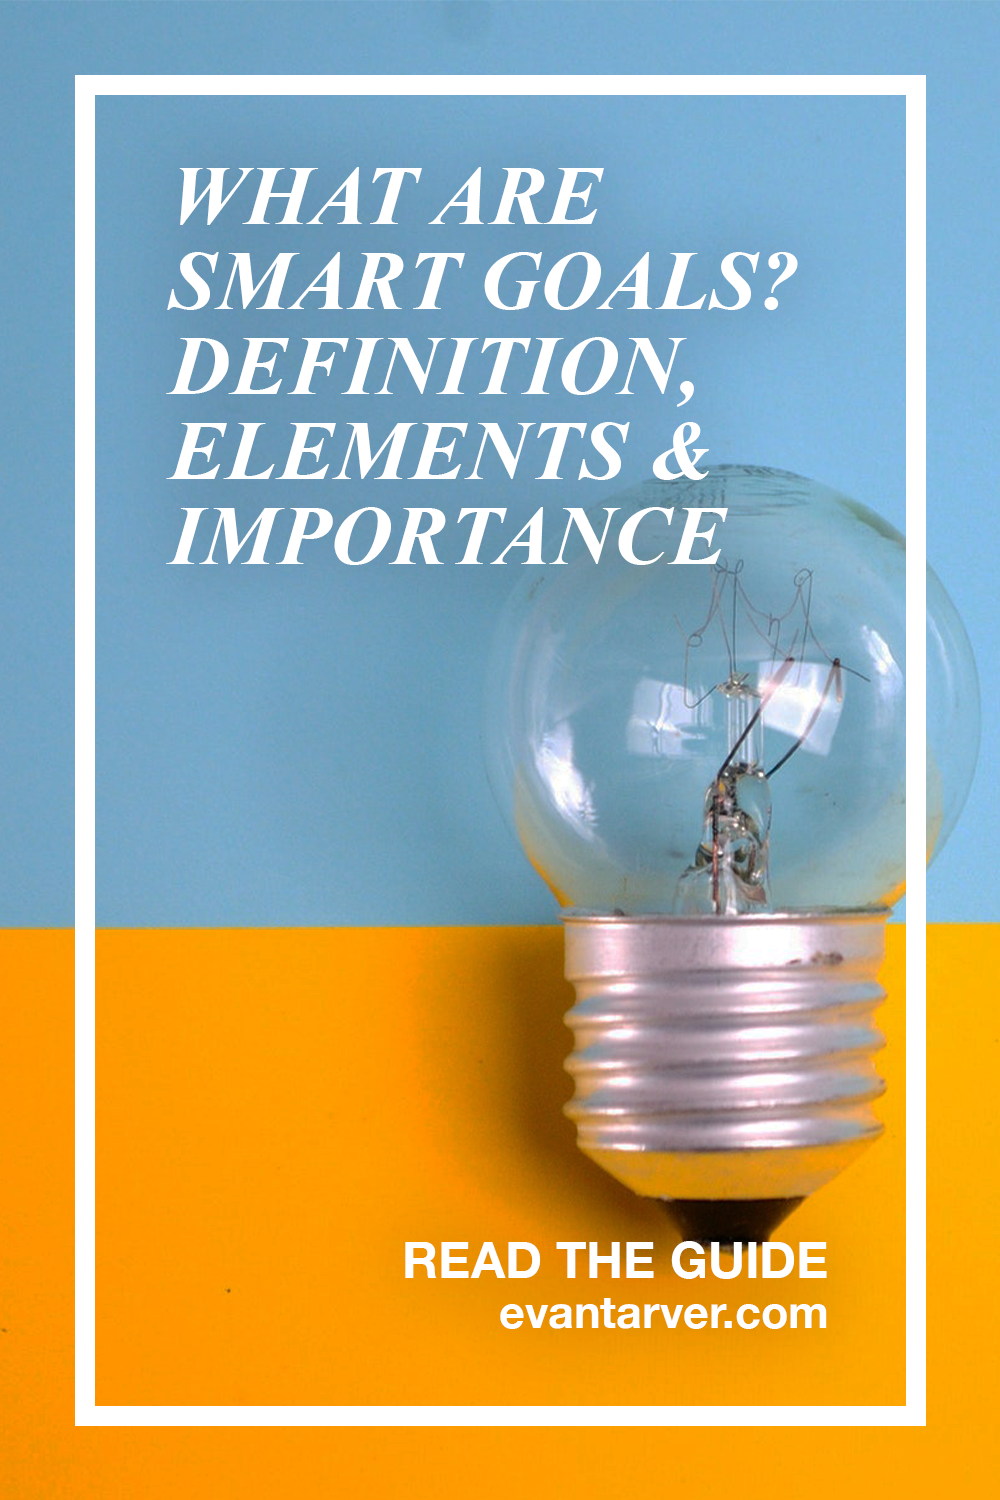 What Are SMART Goals? Definition, Elements Importance